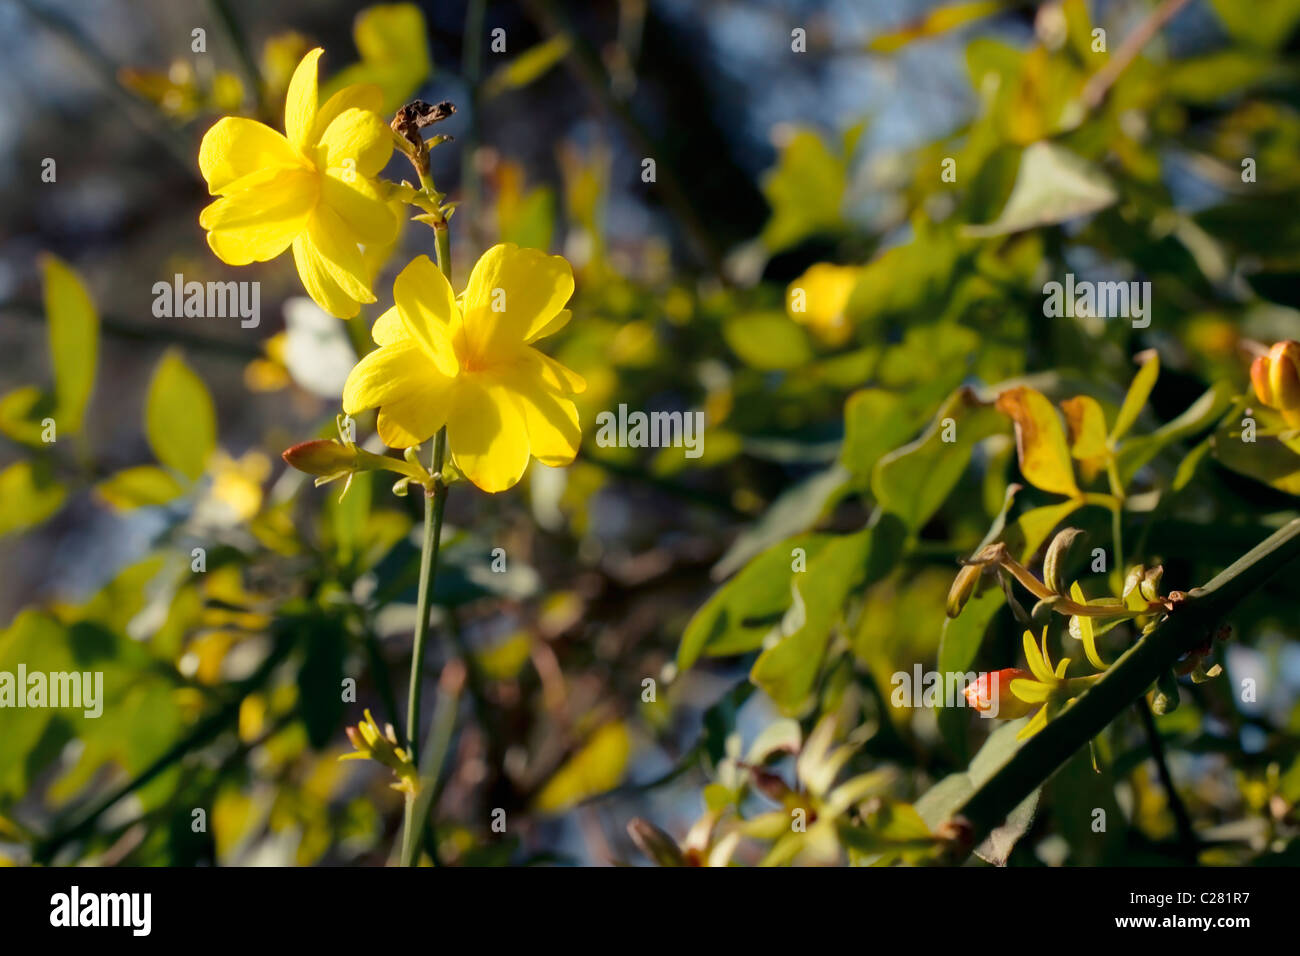 Branch of the japanese jasmine bush with yellow flowers closup stock branch of the japanese jasmine bush with yellow flowers closup izmirmasajfo